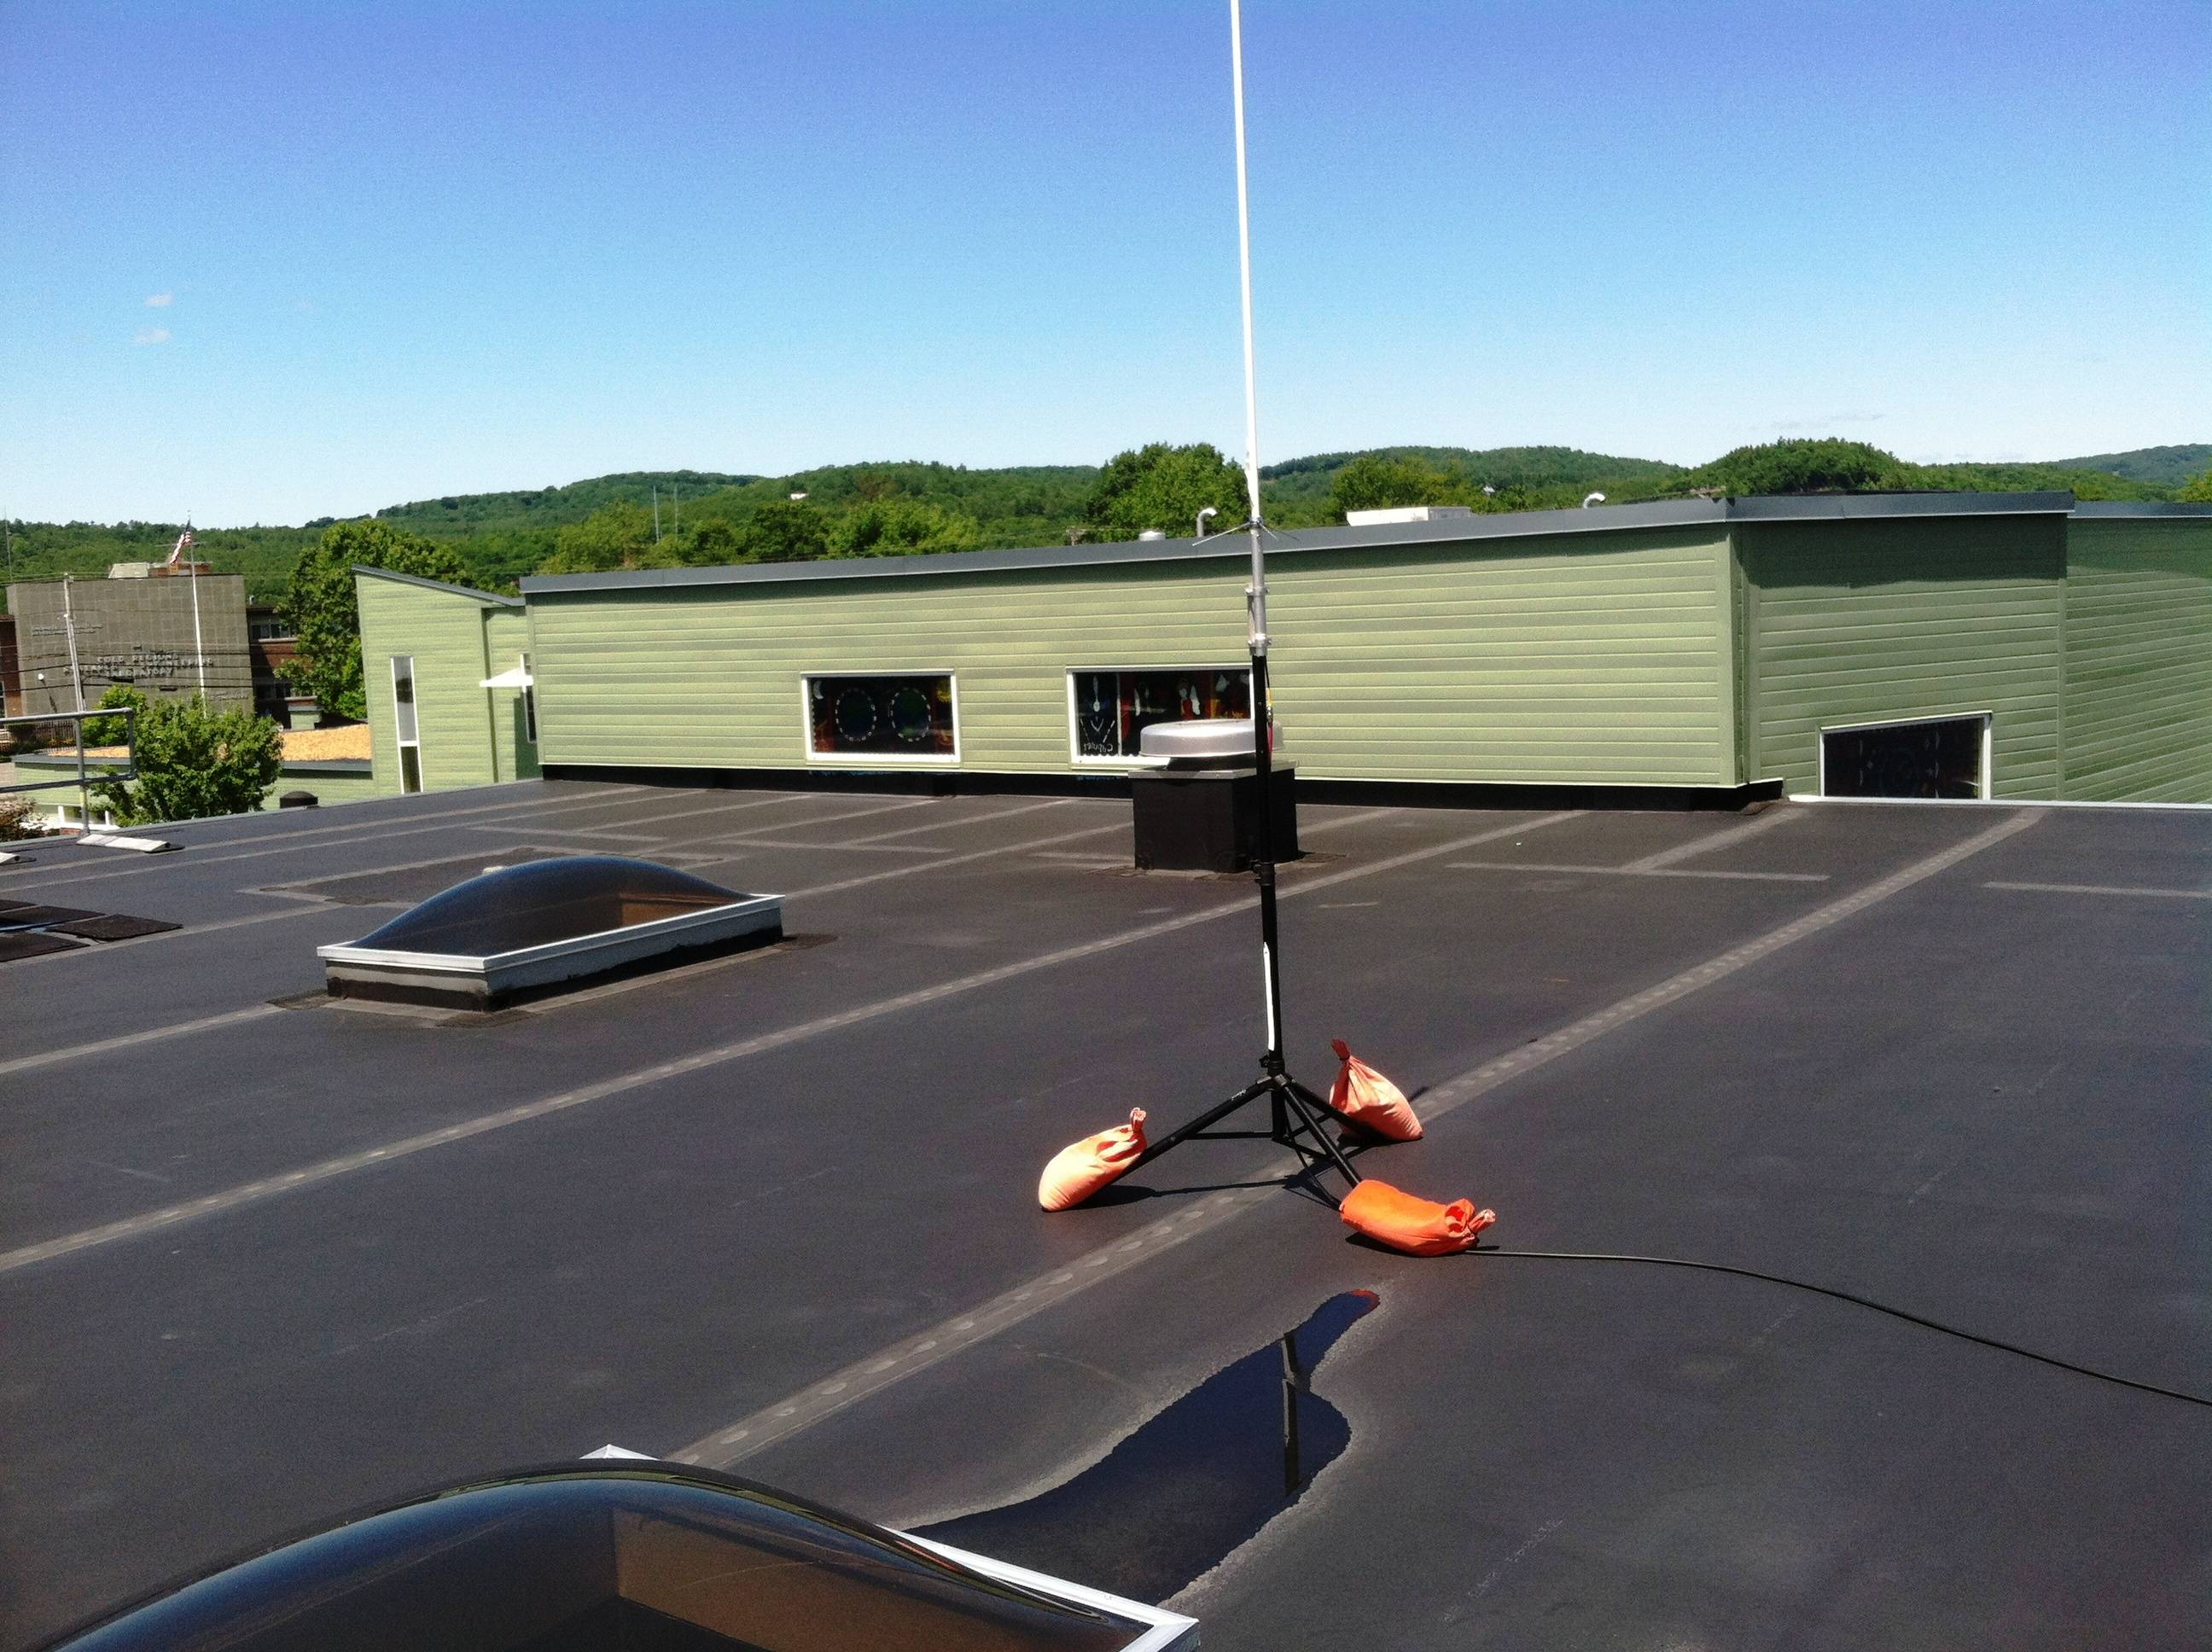 Antenna on the roof